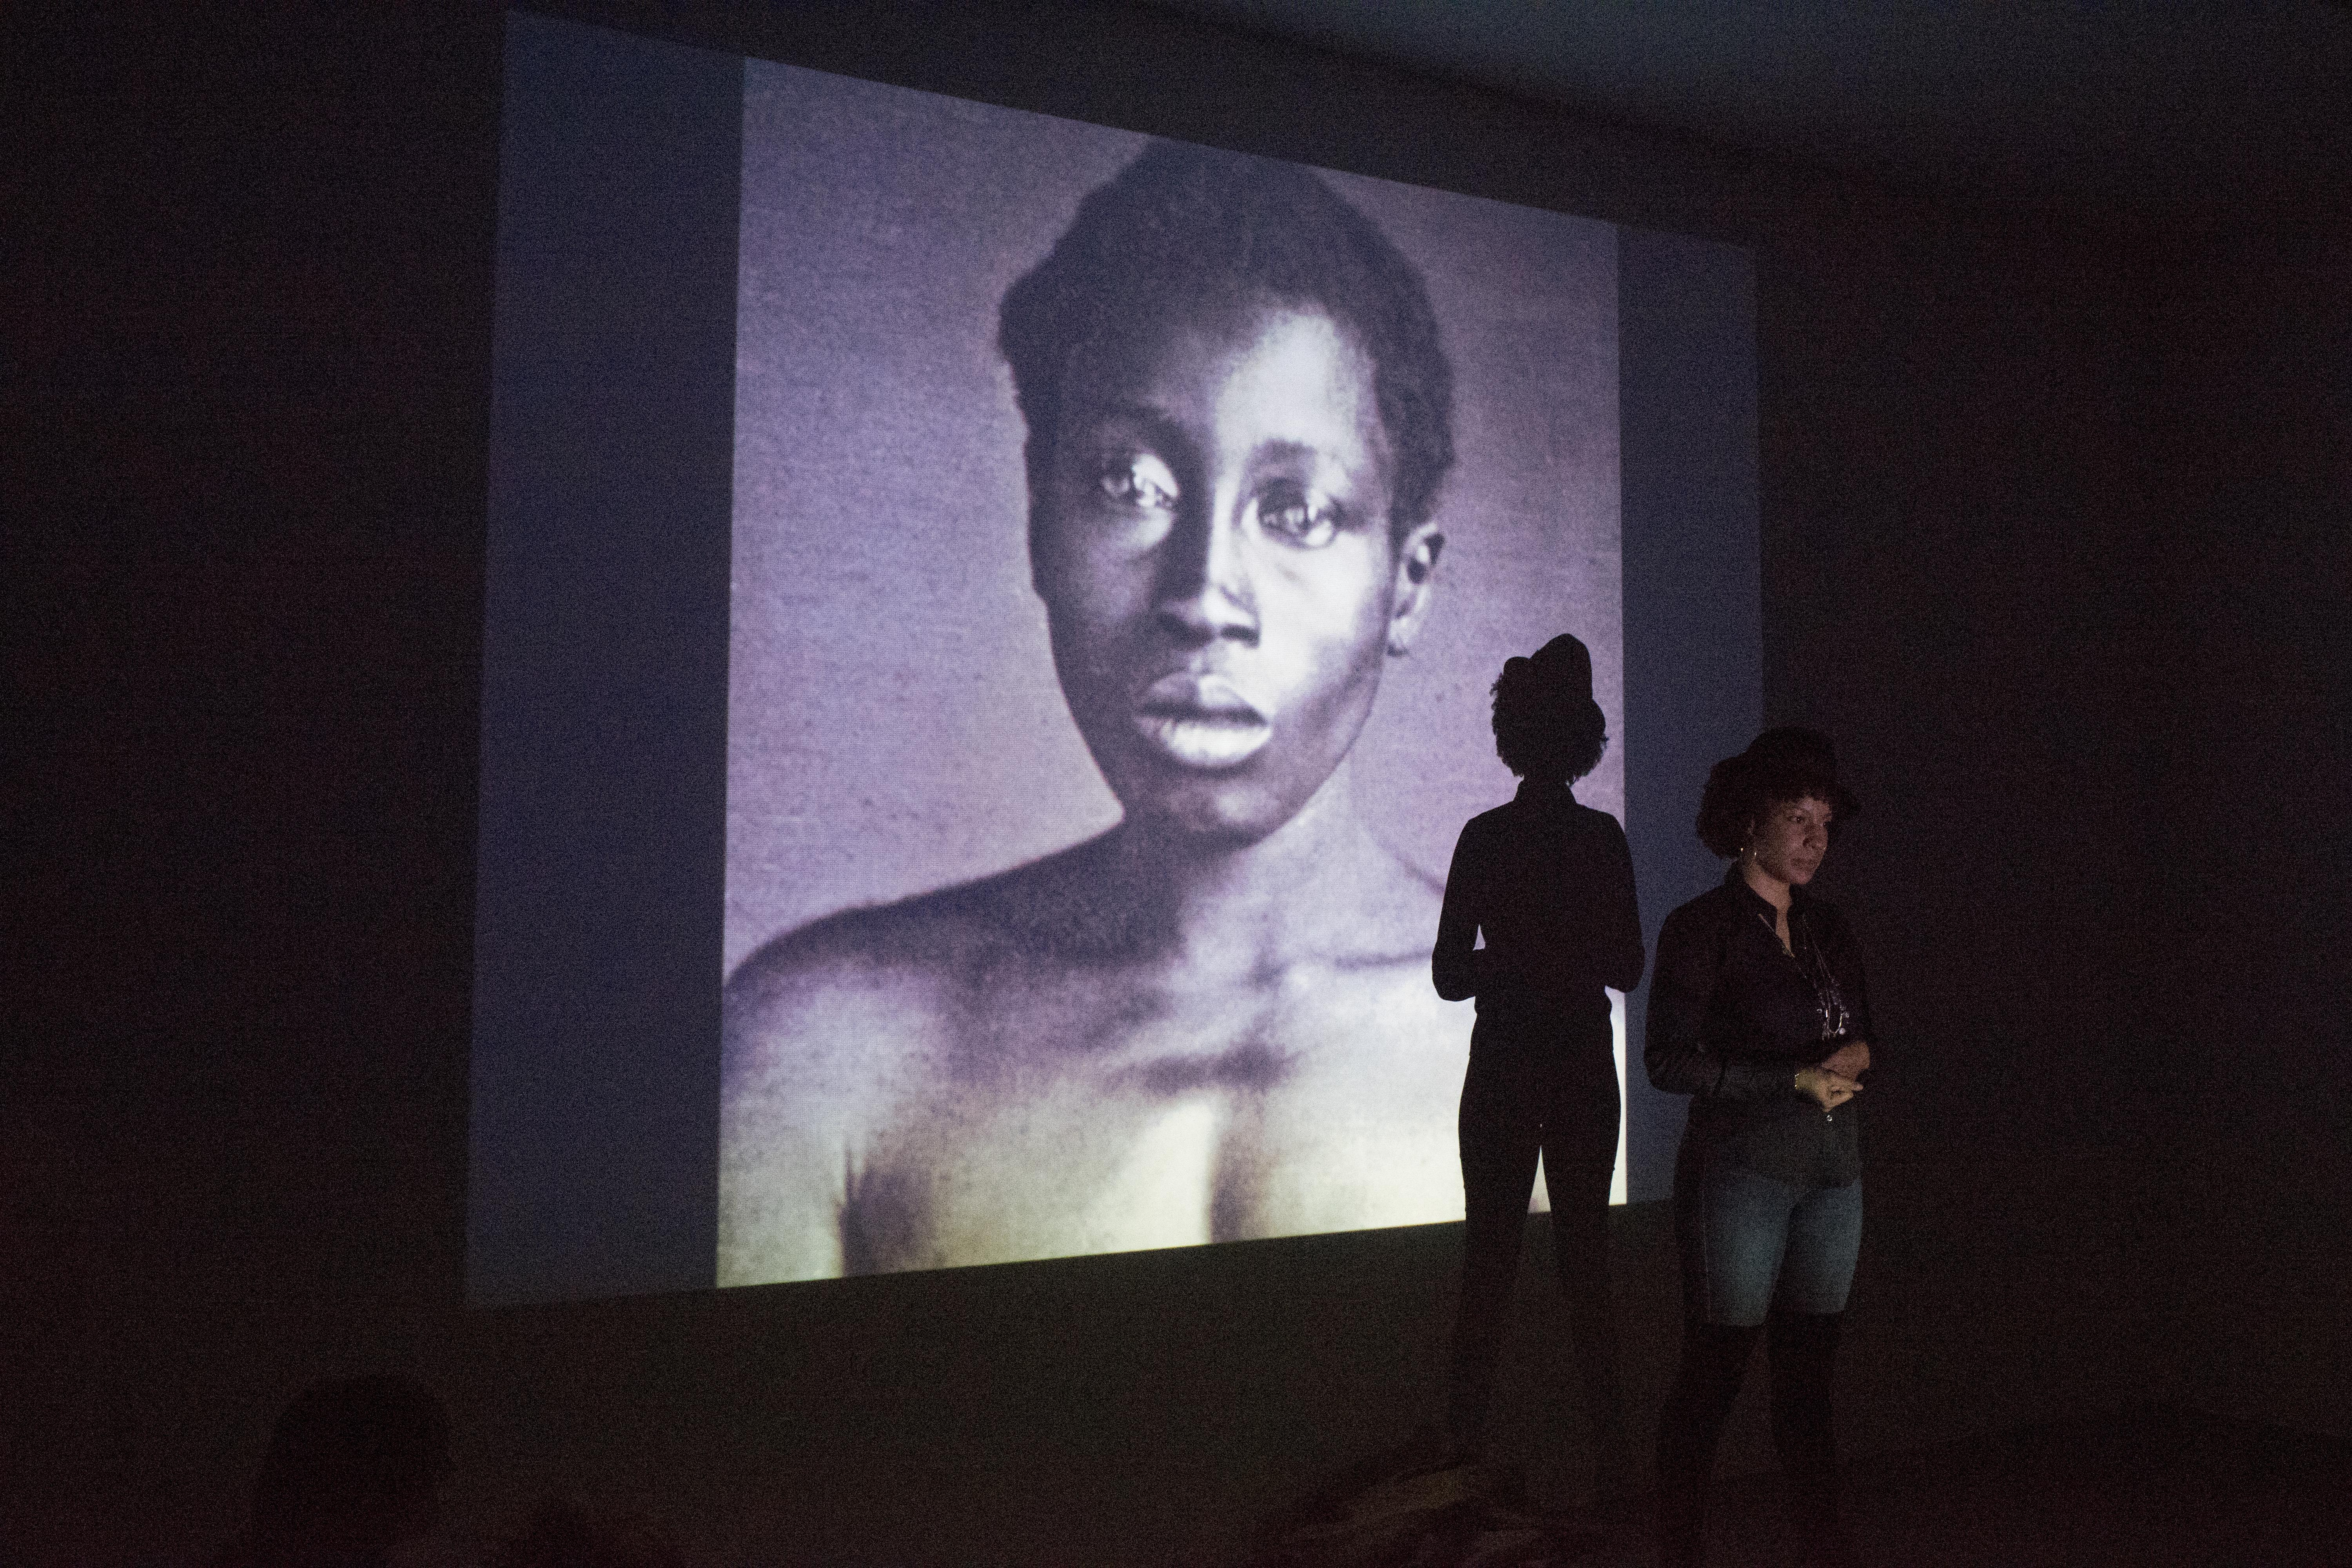 A black woman stands in front of a large projection of a topless, black woman.